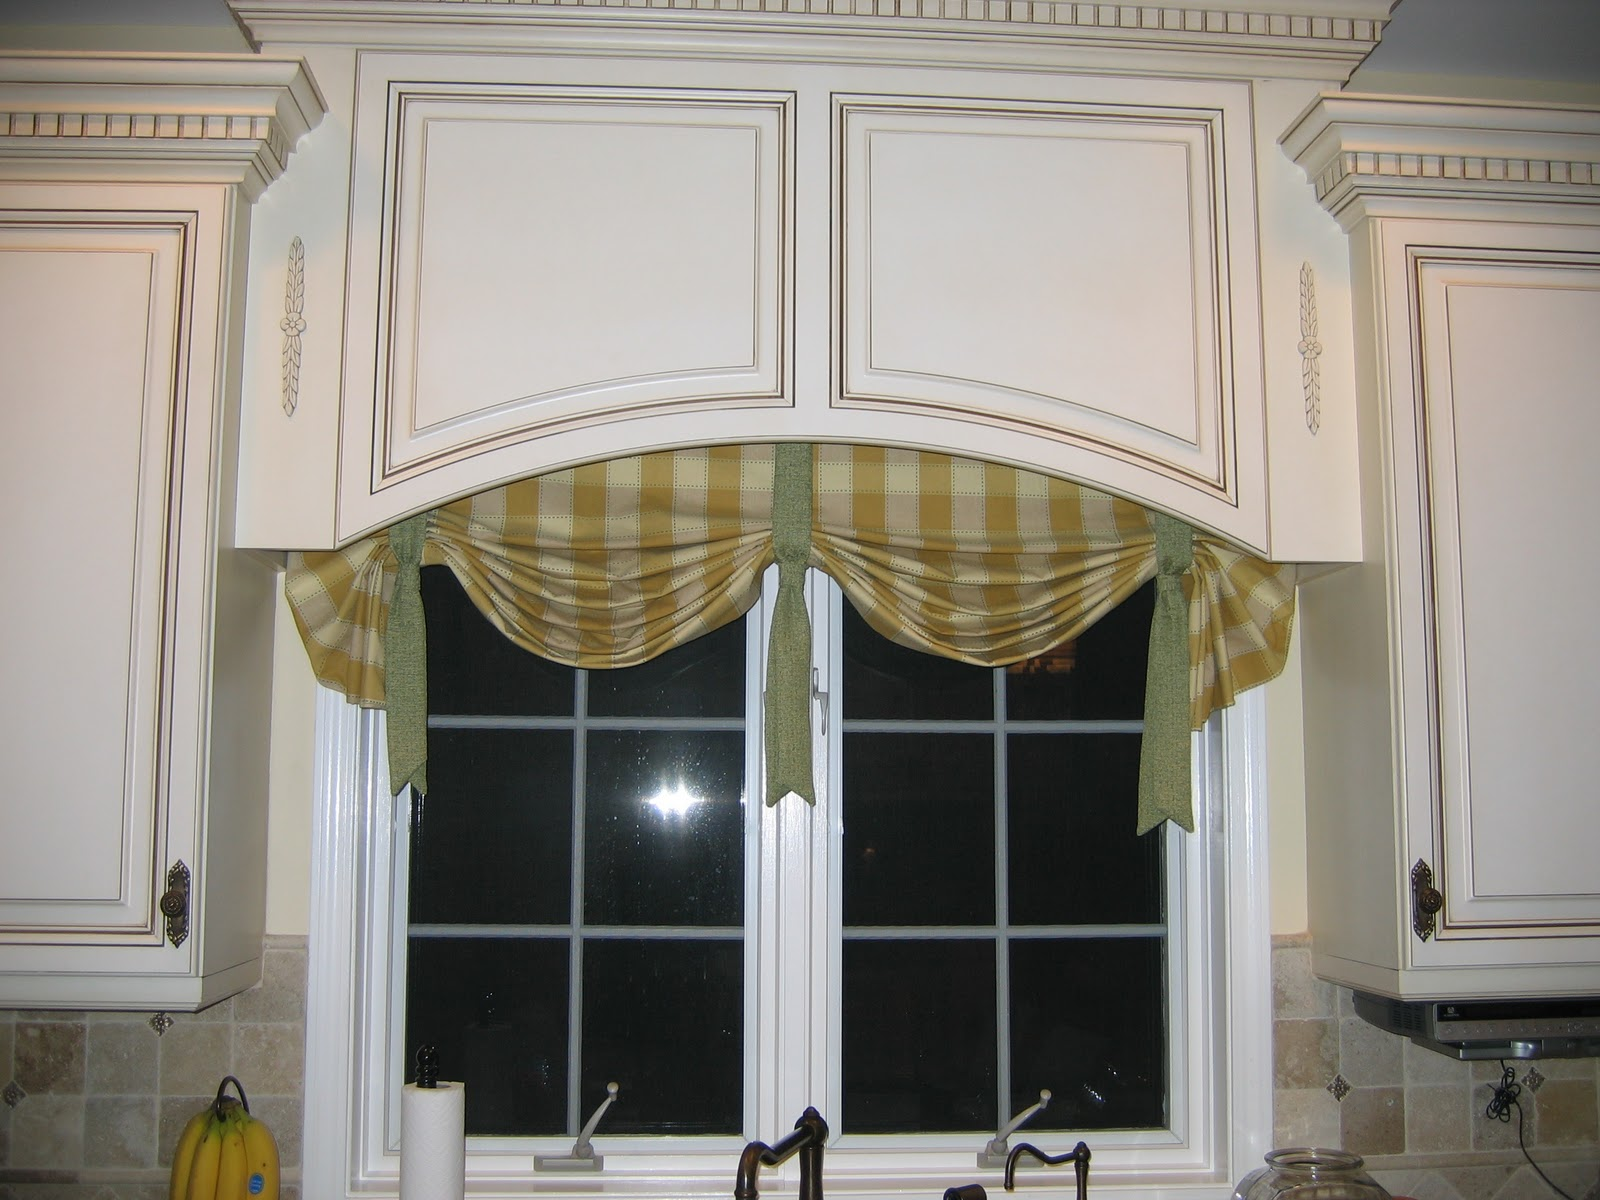 Kitchen Valances For Windows Black Trash Bags Diy By Design Before And After Repost